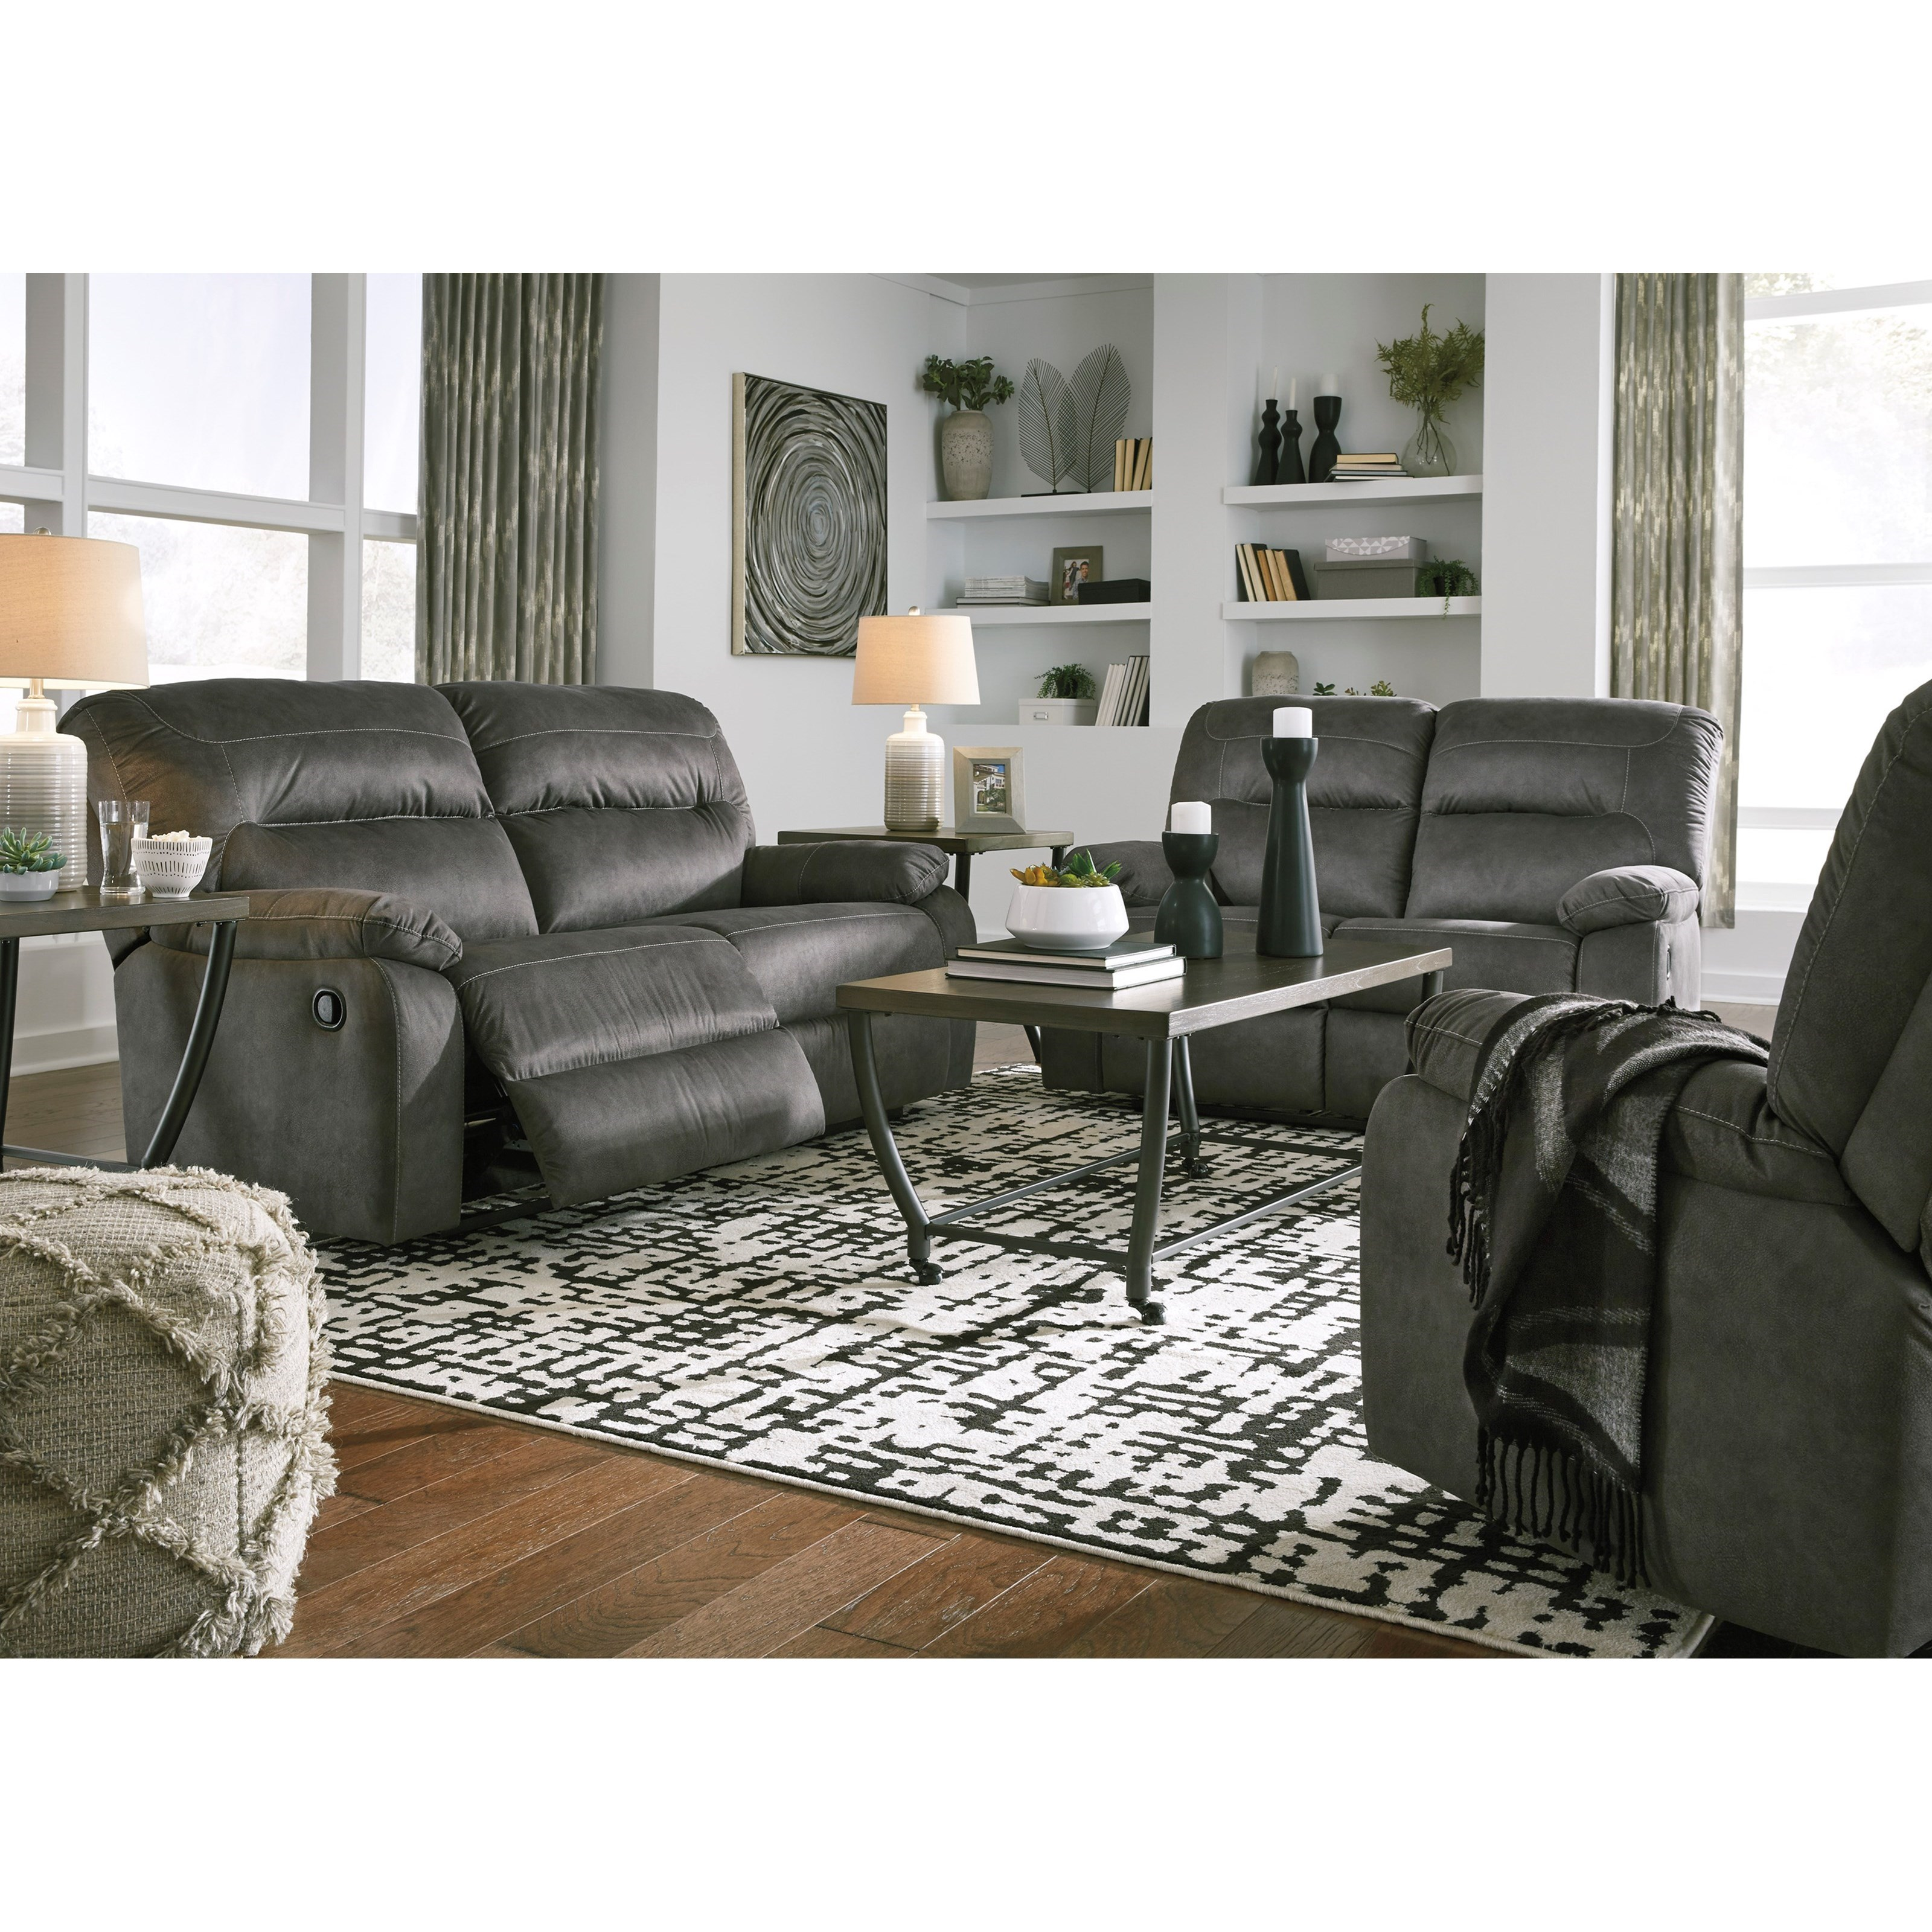 Bolzano Reclining Living Room Group by Benchcraft at Miller Waldrop Furniture and Decor